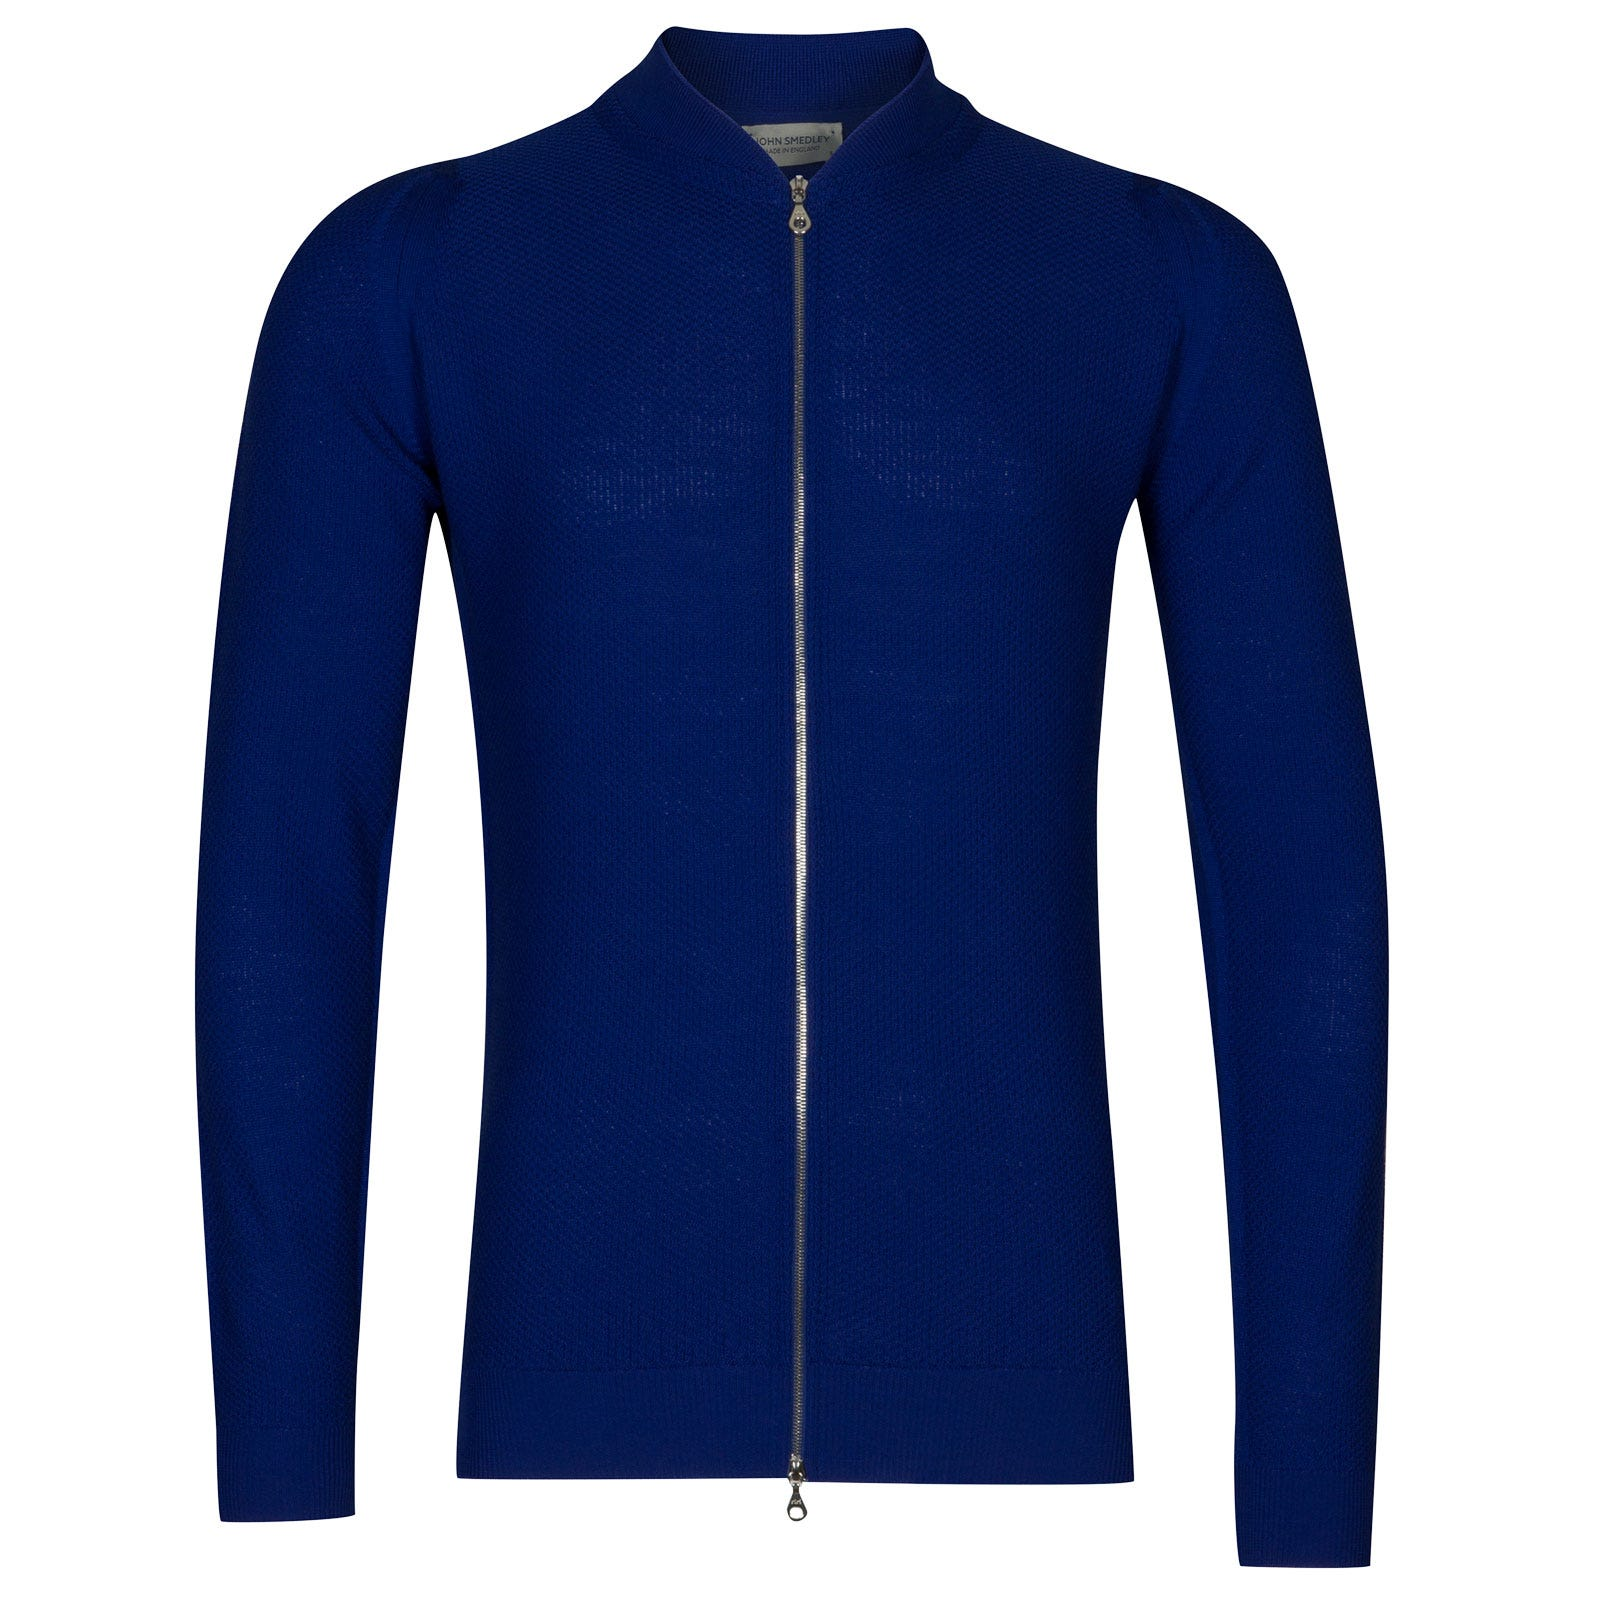 John Smedley 6Singular Merino Wool Jacket in Coniston Blue-XL